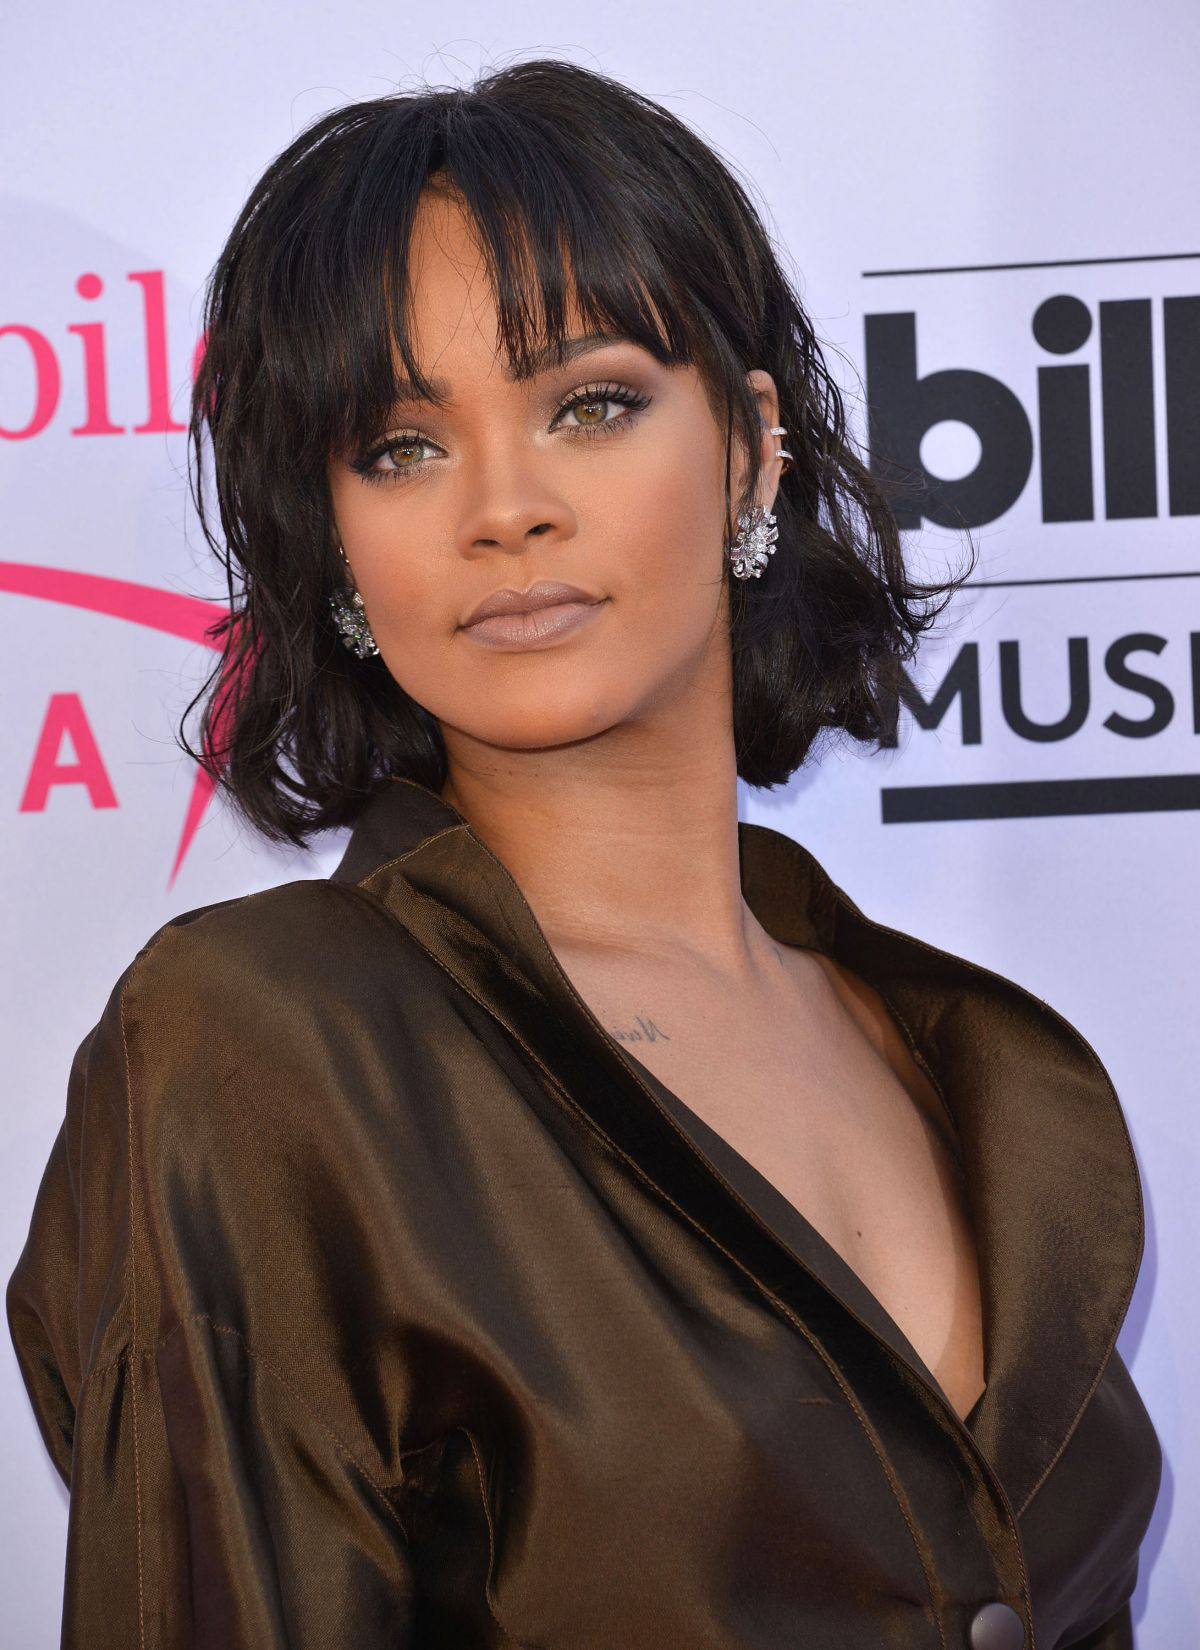 Rihanna Archives - Pag... Rihanna Songs 2016